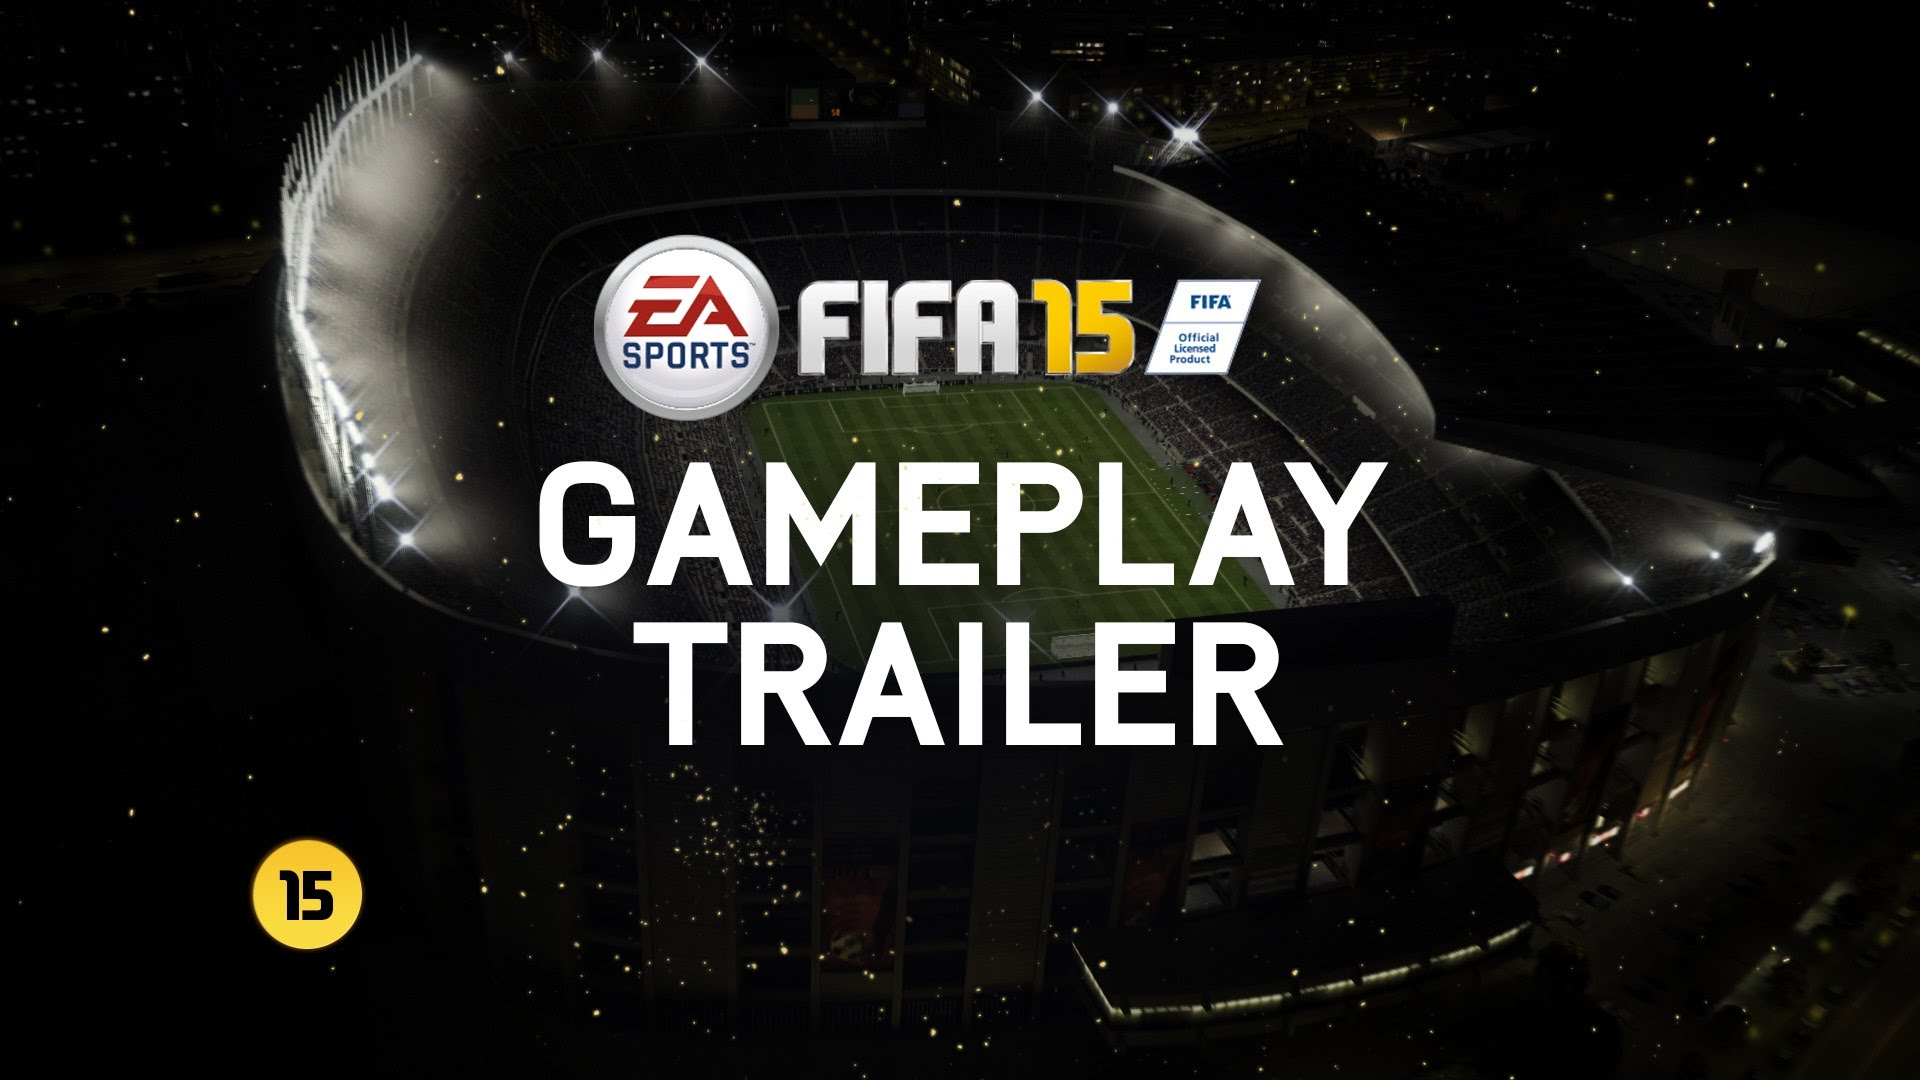 Fifa 15, EA sports, FIFA 15 - Official E3 Gameplay Trailer, PS4, Xbox, EA Sports FIFA 15,Messi,ronaldo,EA Sports THE GAME,gaming experience,realistic gaming,PC